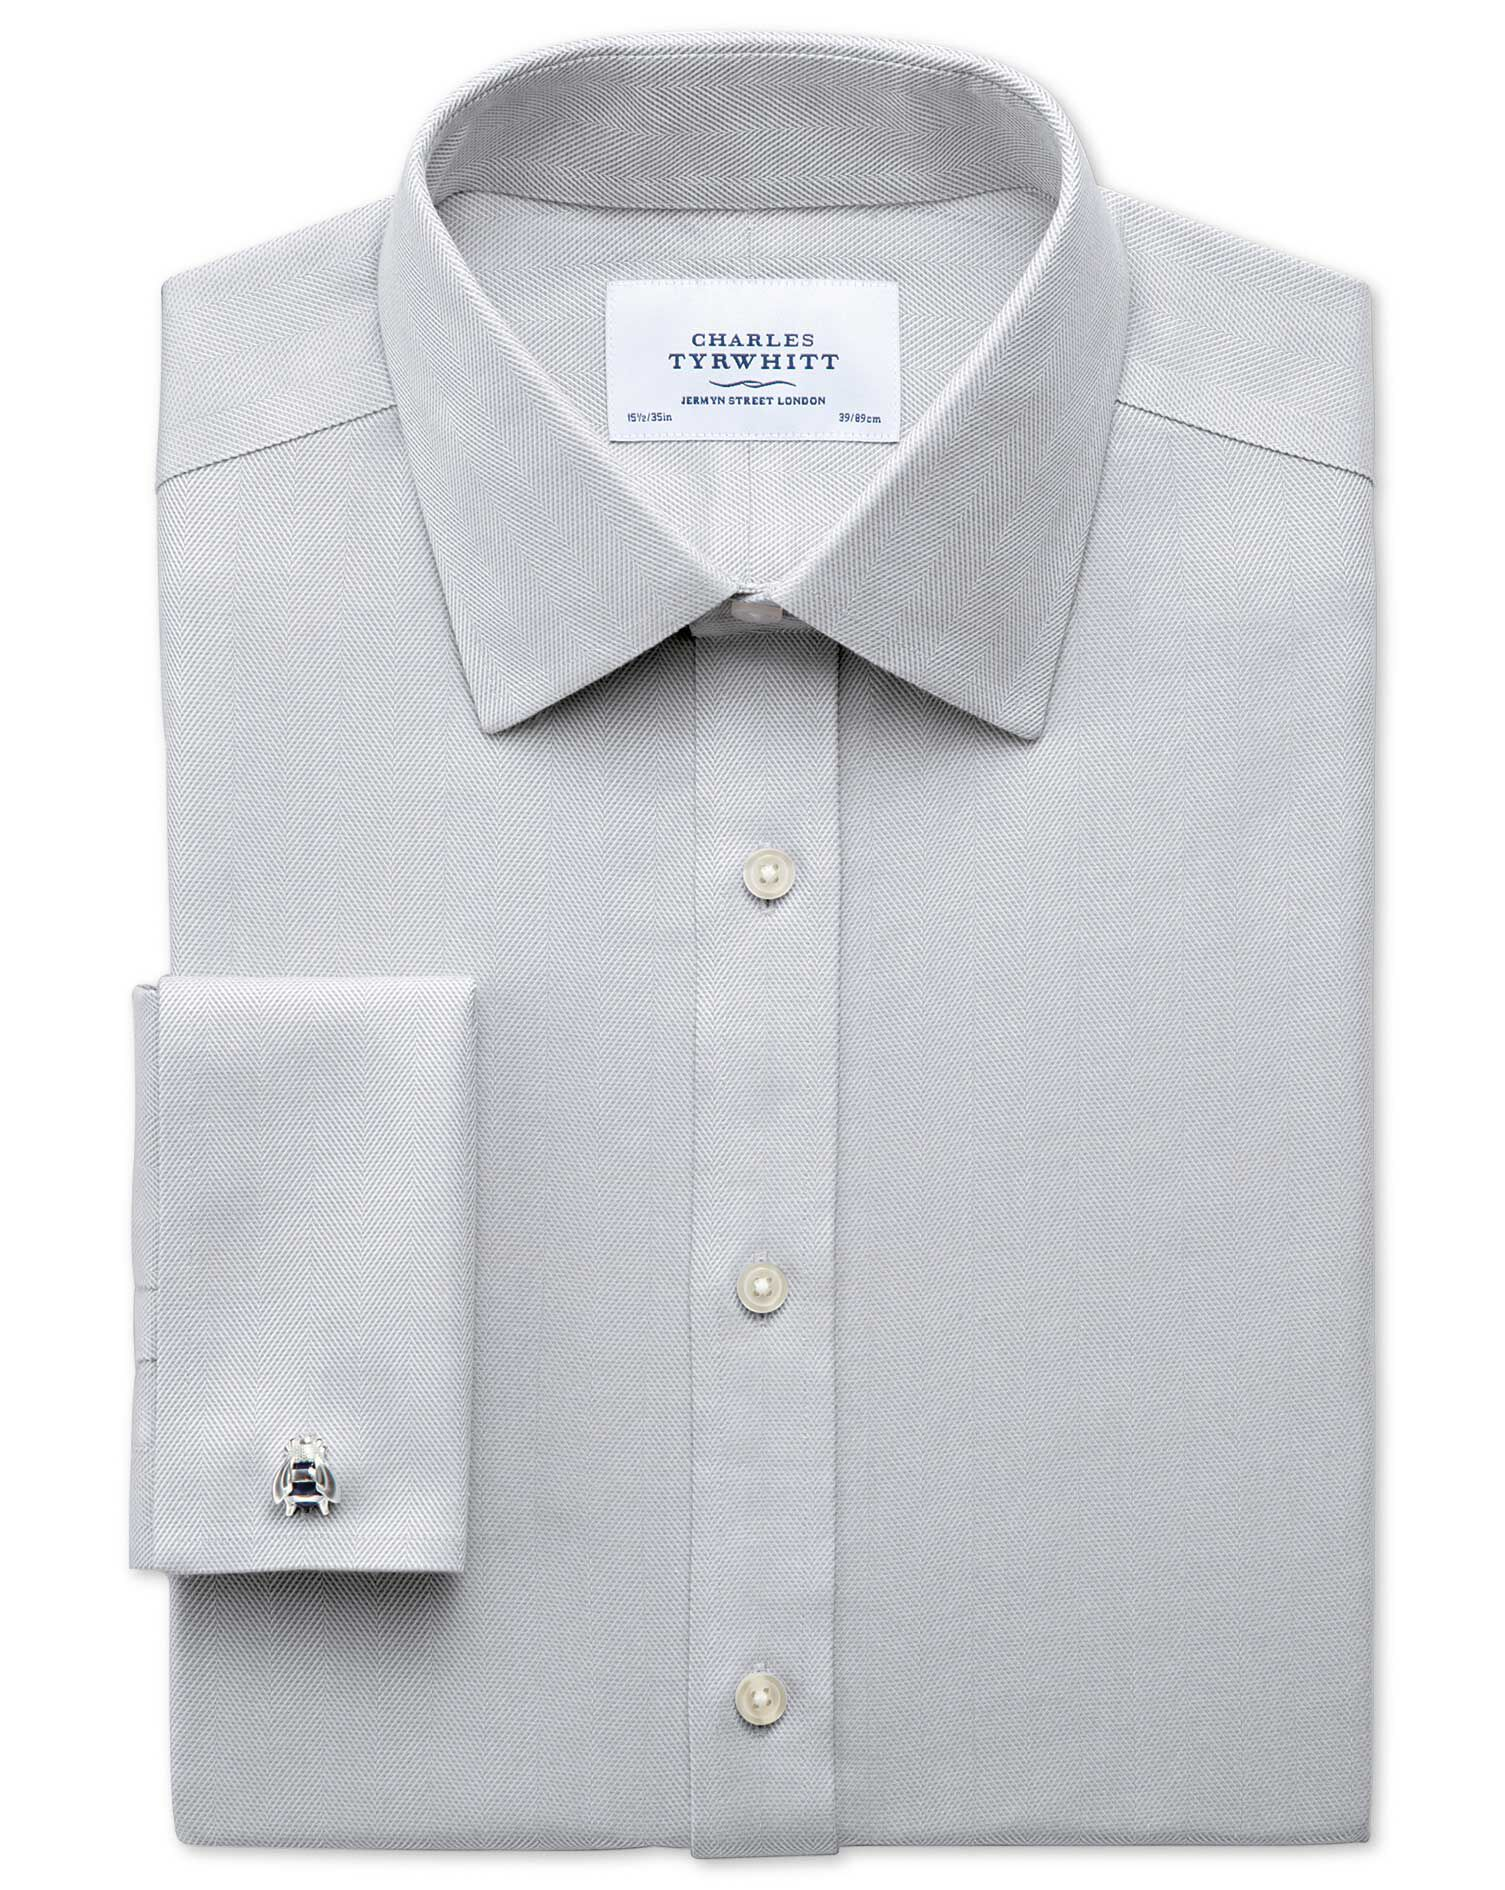 Classic Fit Non-Iron Herringbone Grey Cotton Formal Shirt Double Cuff Size 16/35 by Charles Tyrwhitt